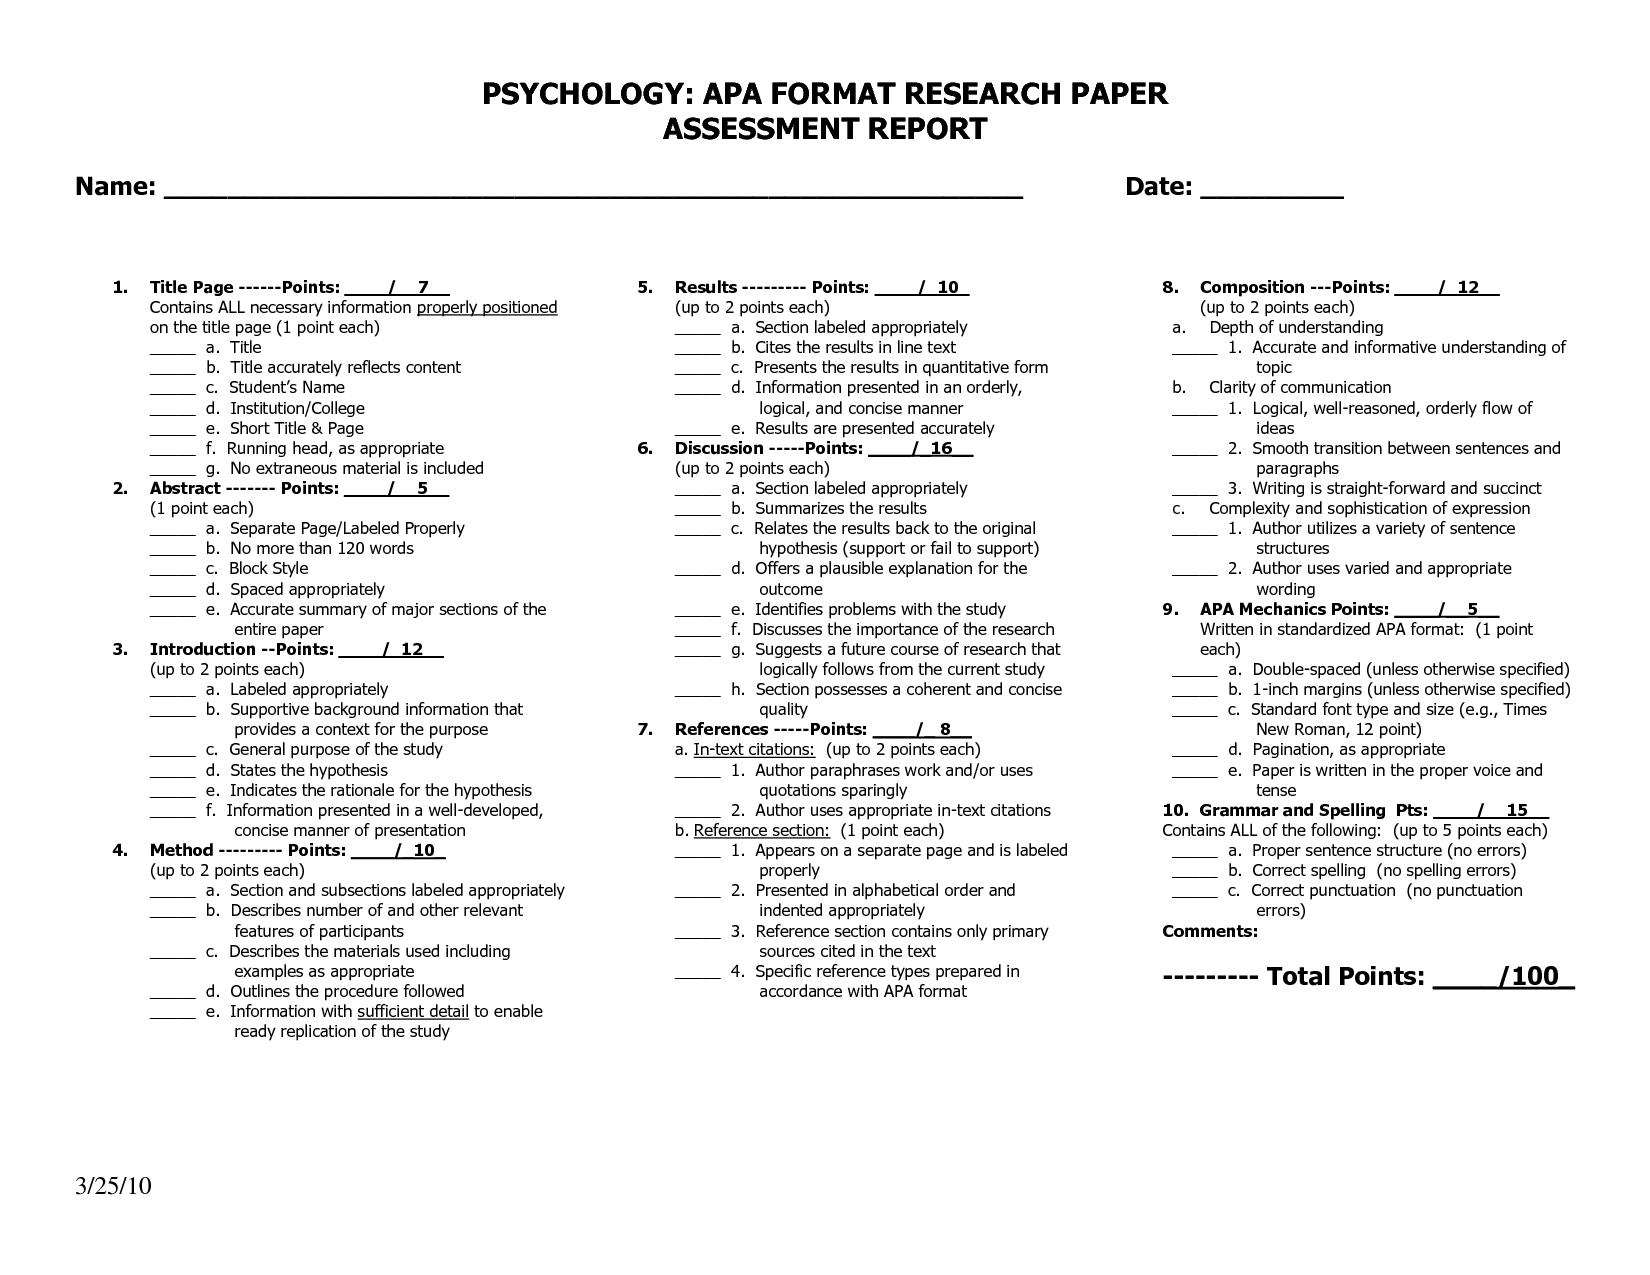 012 Psychology Research Paper Apamat Sensational Outline Apa Abstract Full